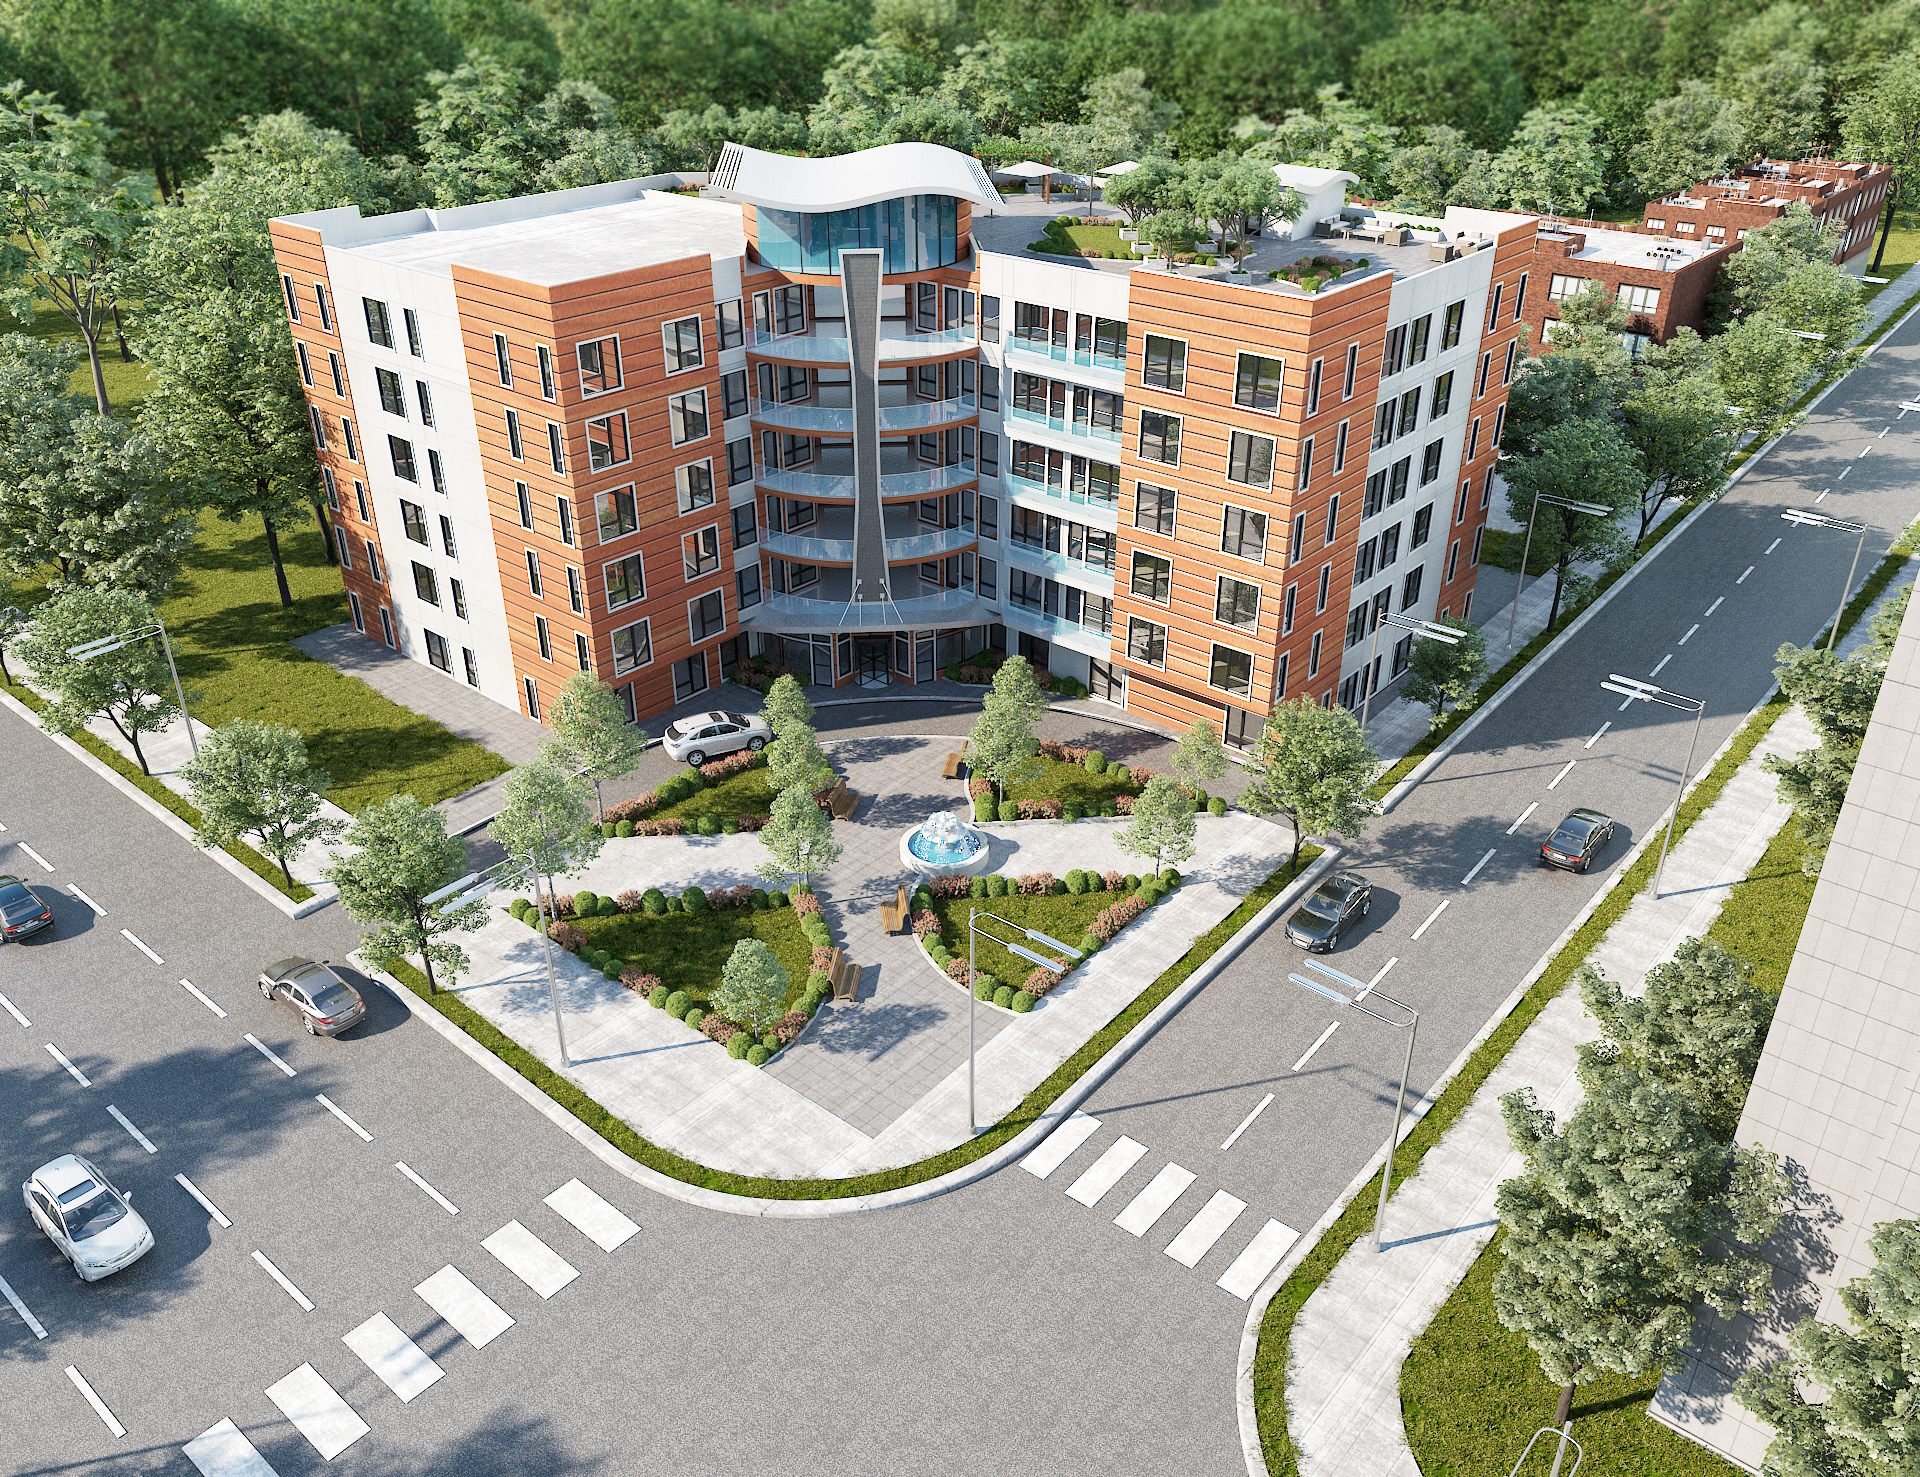 Holland Avenue_Multifamily Building